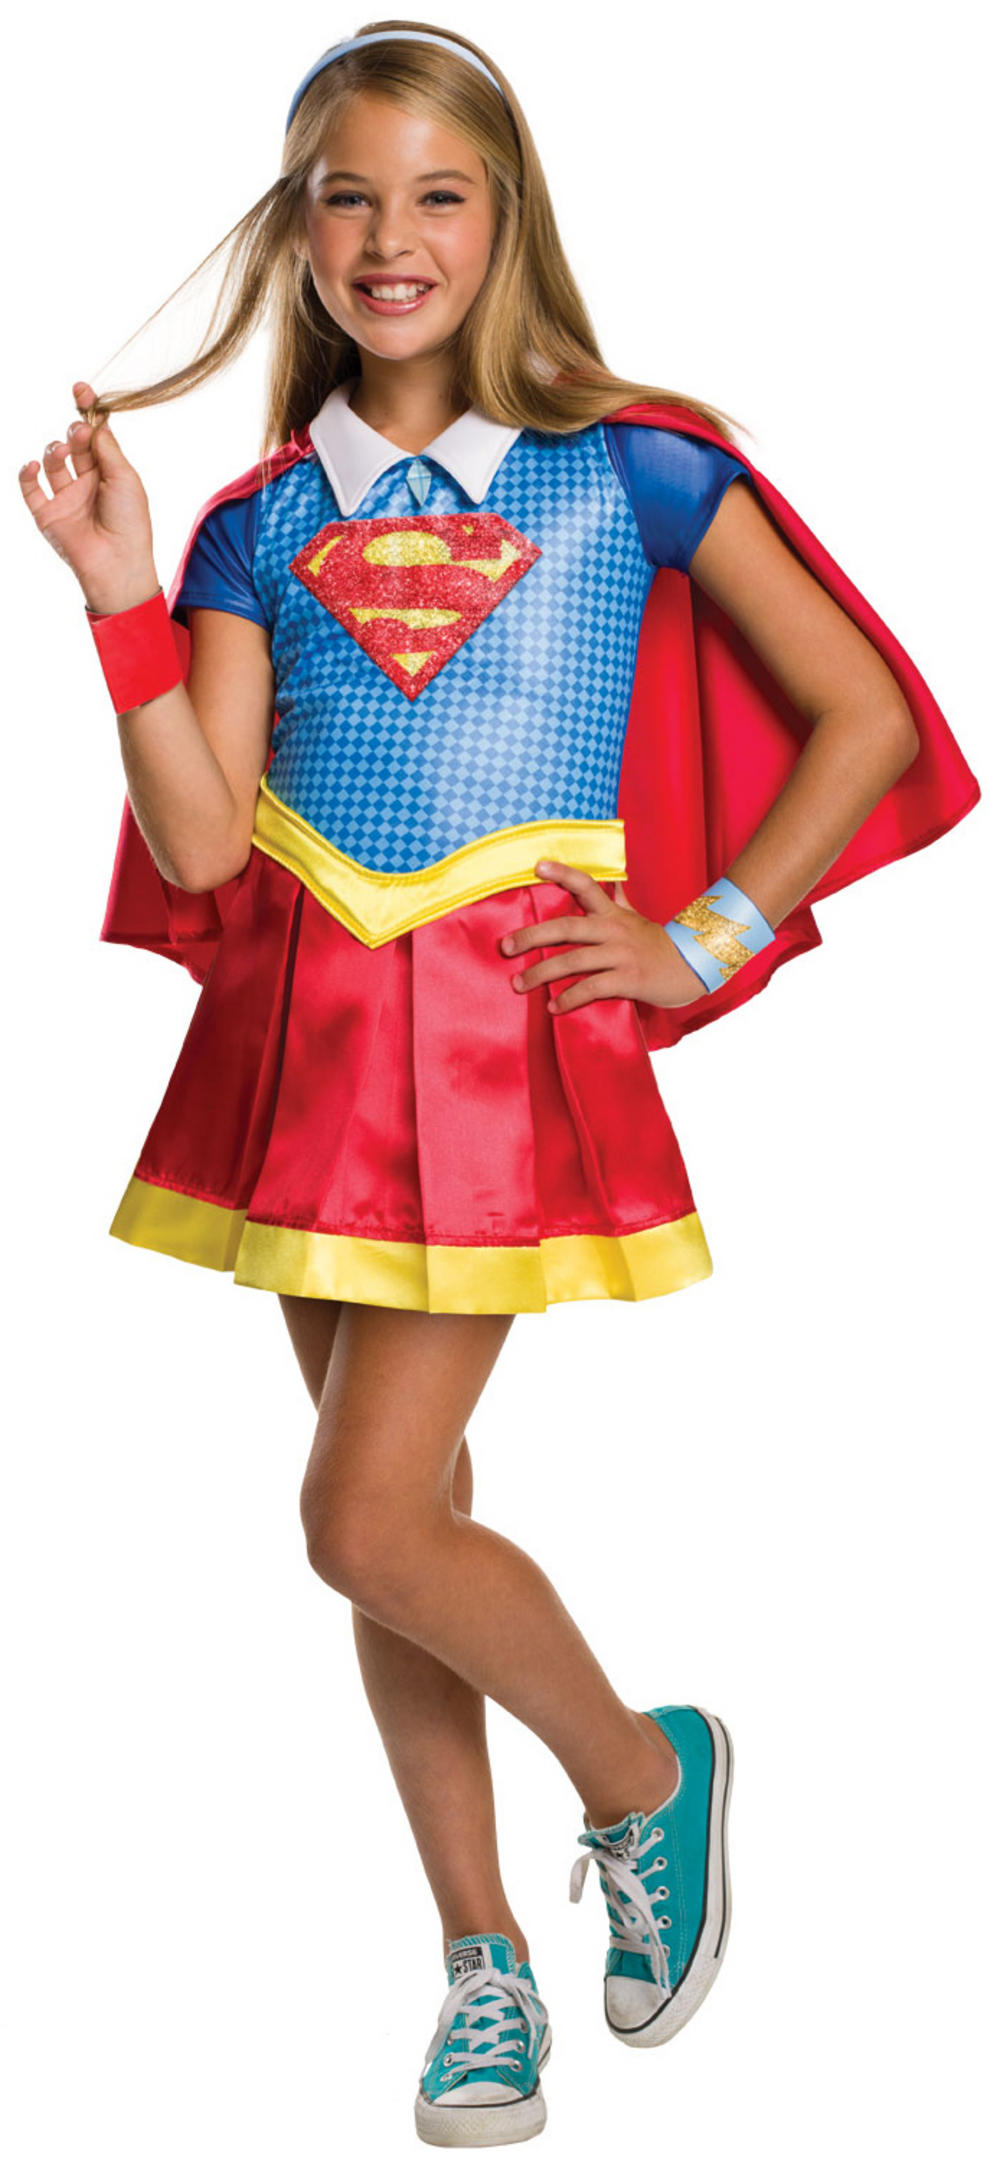 You can find dress costume, TV & Movie Costumes kids fancy dress costumes free shipping, kids halloween fancy dress costumes and view 75 kids fancy dress costumes .